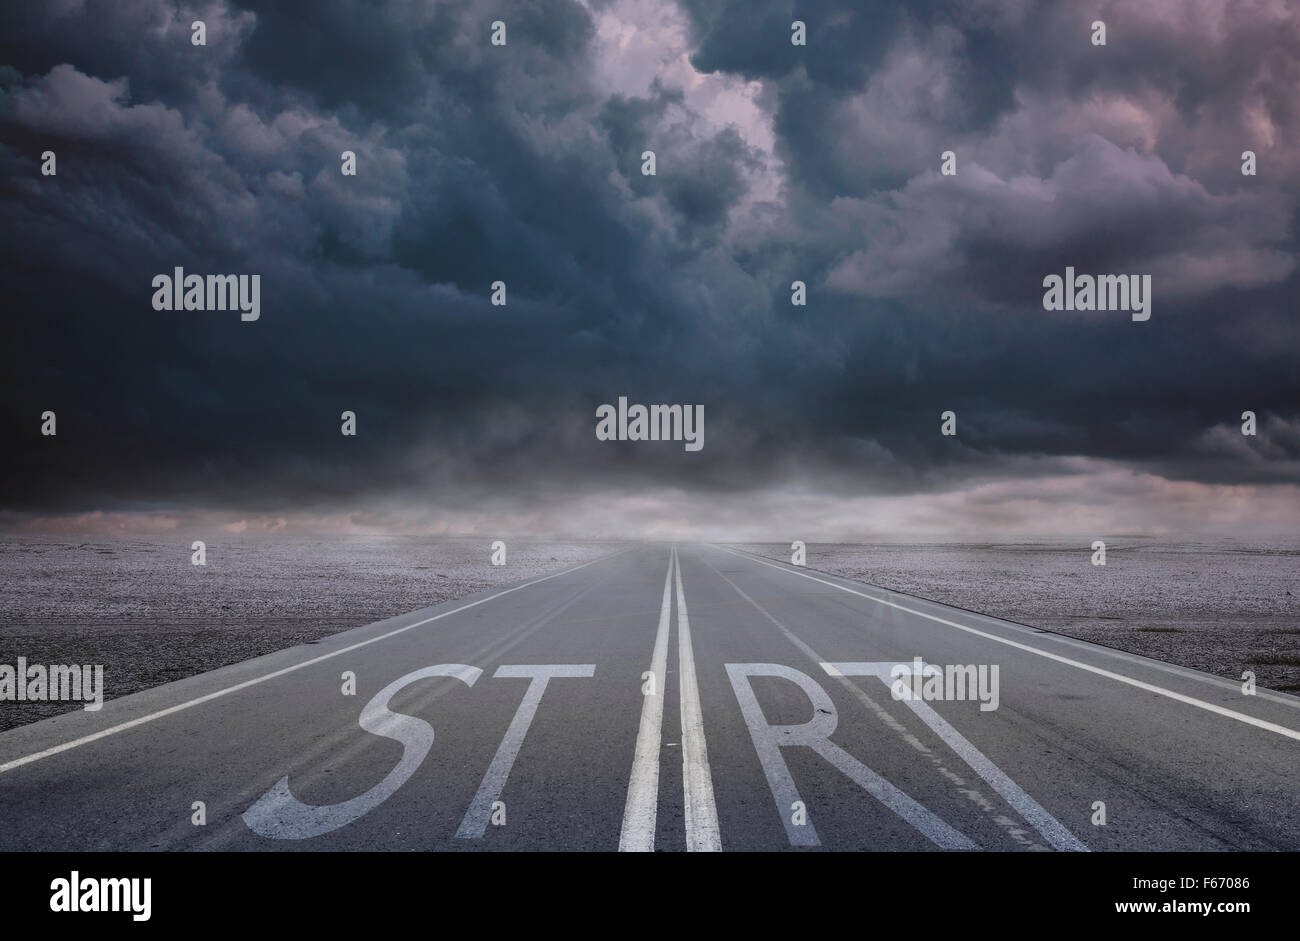 Start text on the road - Stock Image